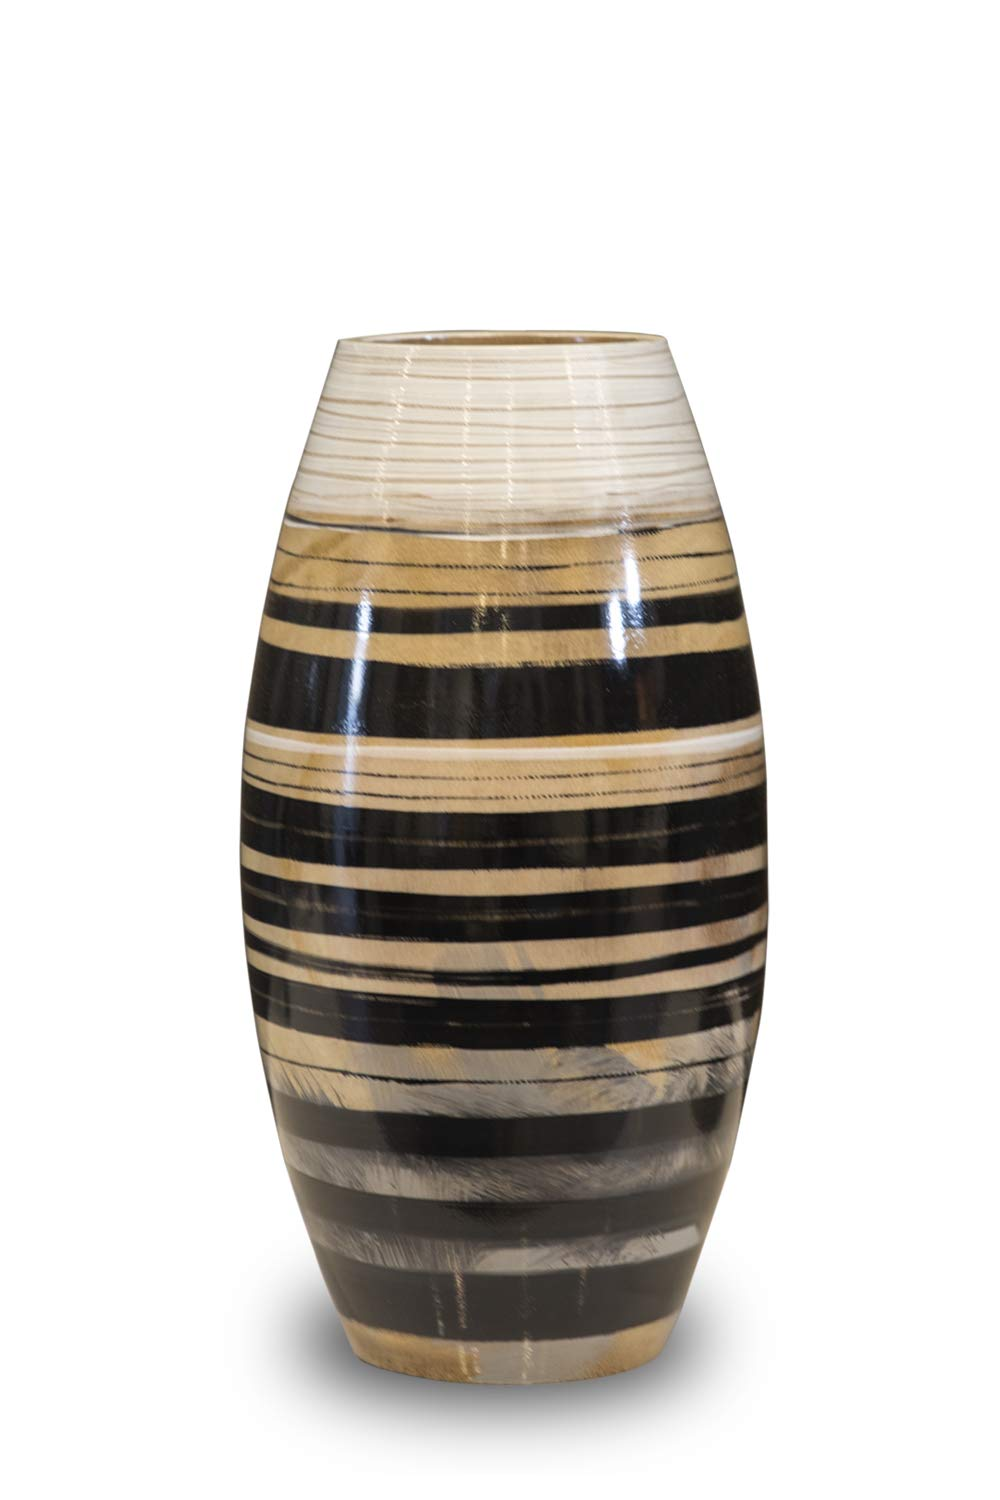 H HOMEPAINT Handmade Wooden Vase Natural & Eco-Friendly Wood Decoration for Home Office 7.5 x 13.8 Inch Gift